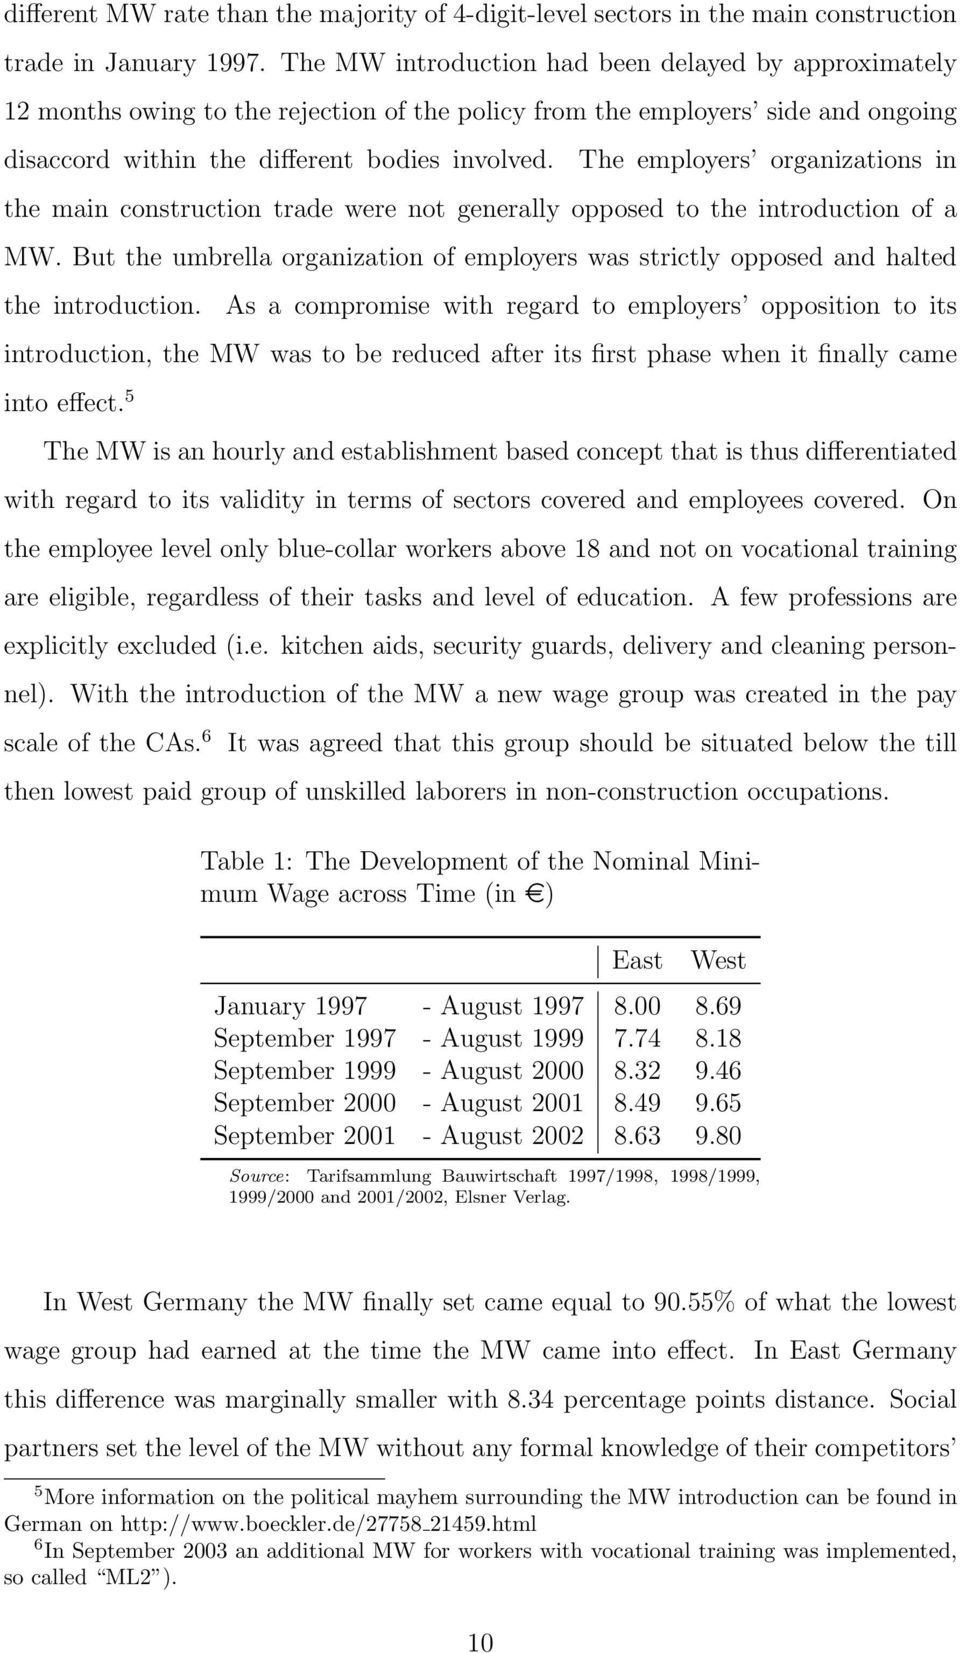 The employers organizations in the main construction trade were not generally opposed to the introduction of a MW.